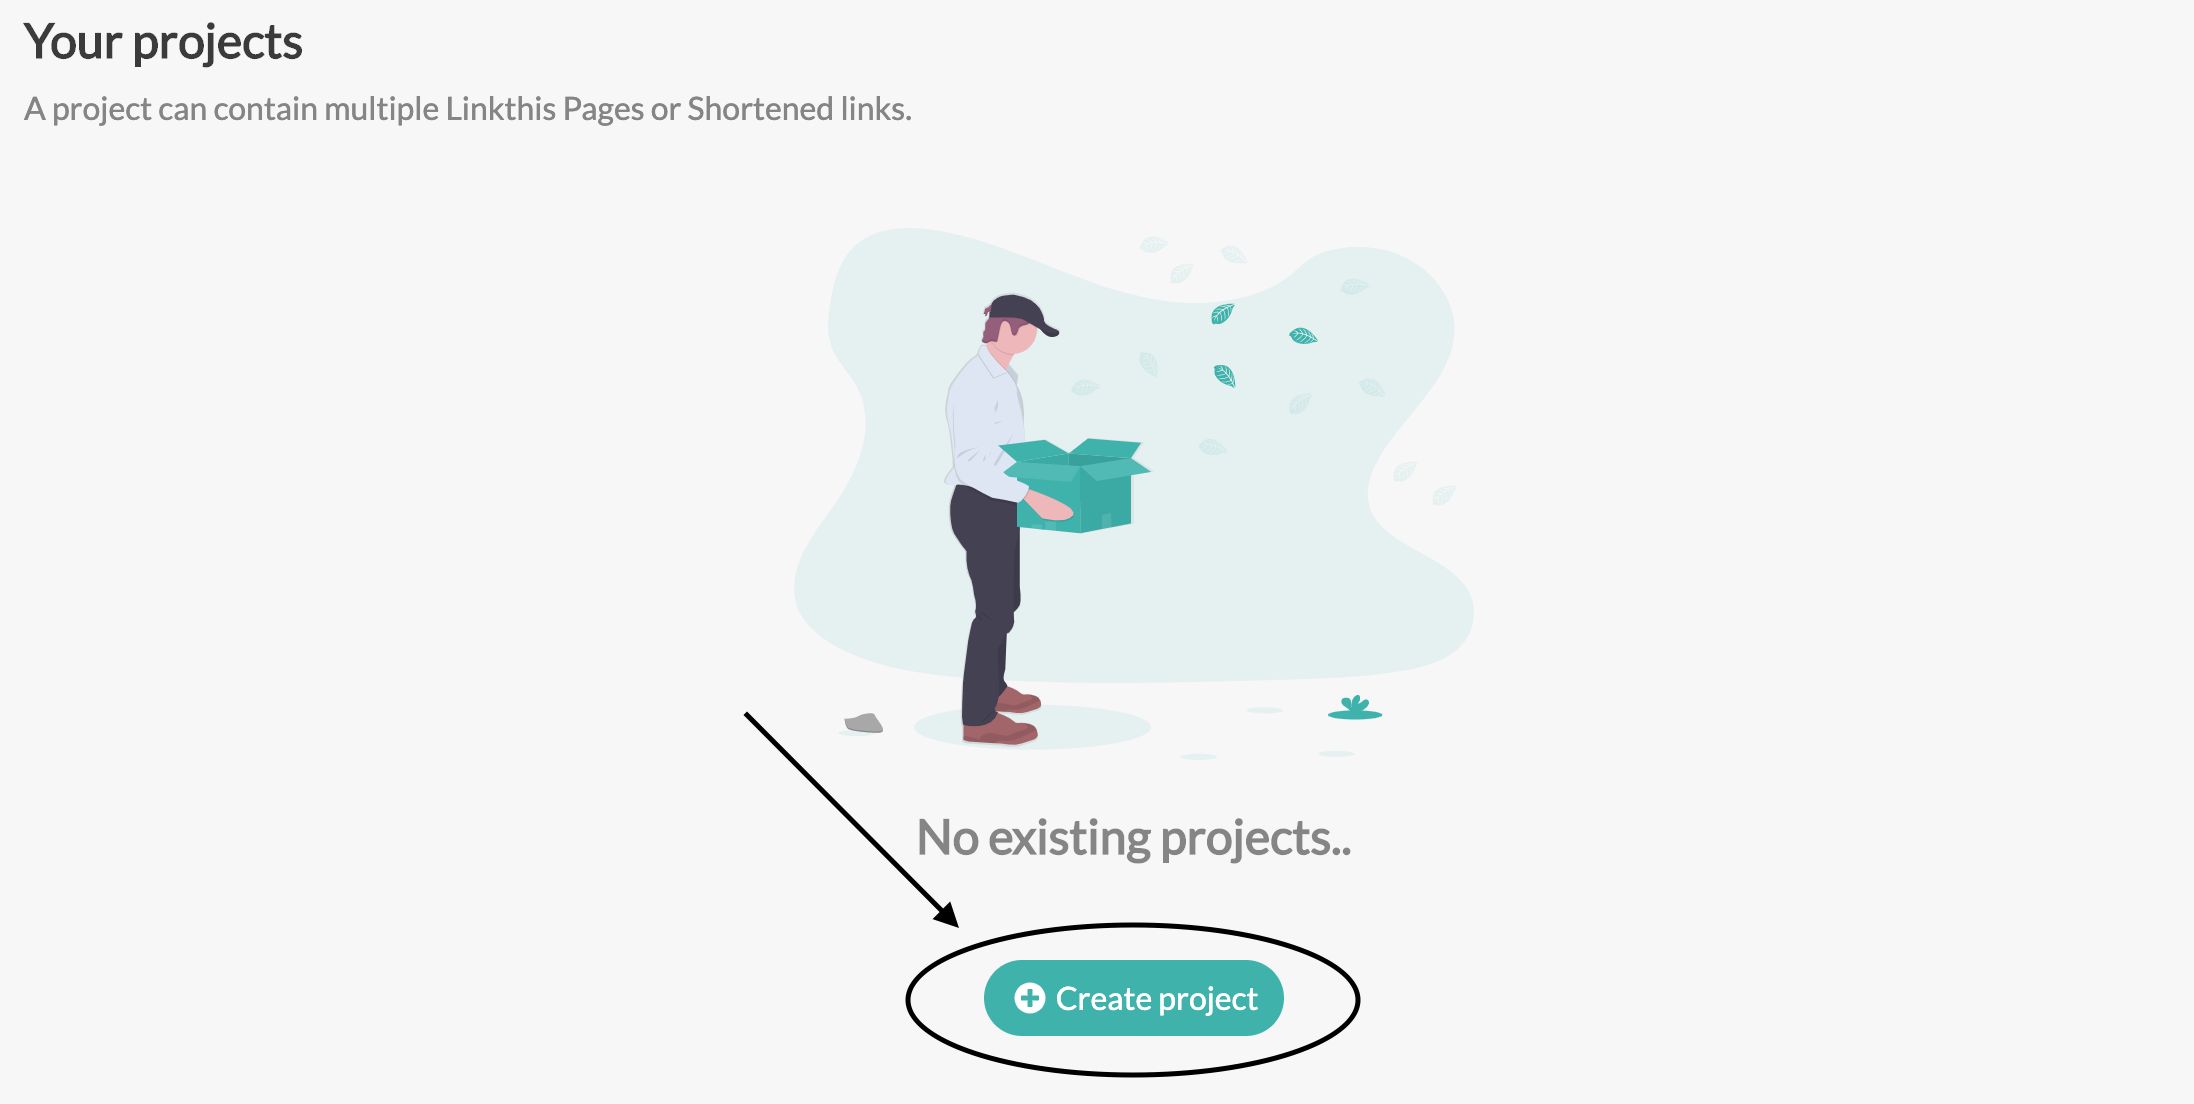 Create a project by clicking the button